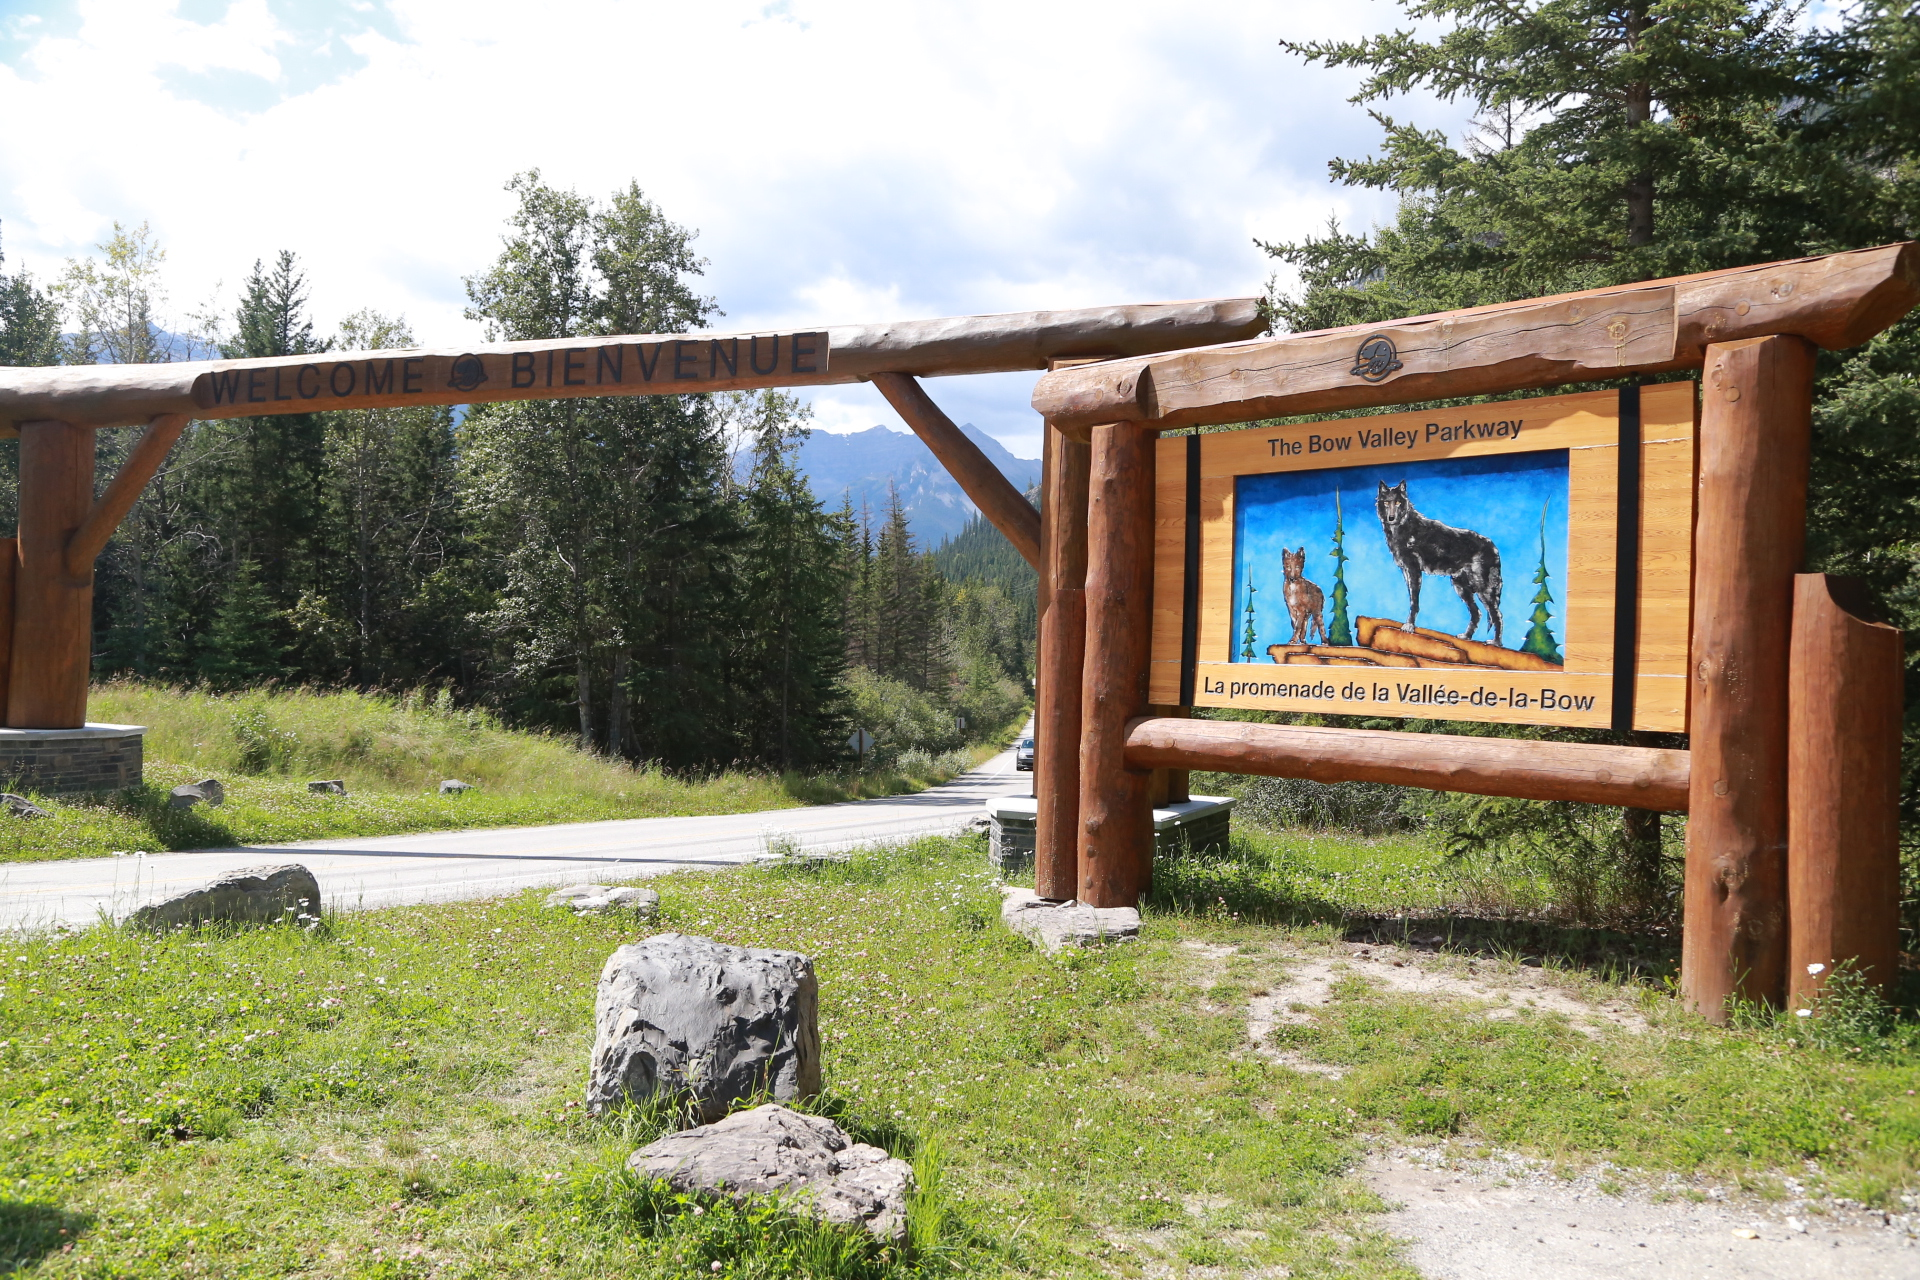 Erie Nick Lake Louise City Guide: Bow Valley Parkway